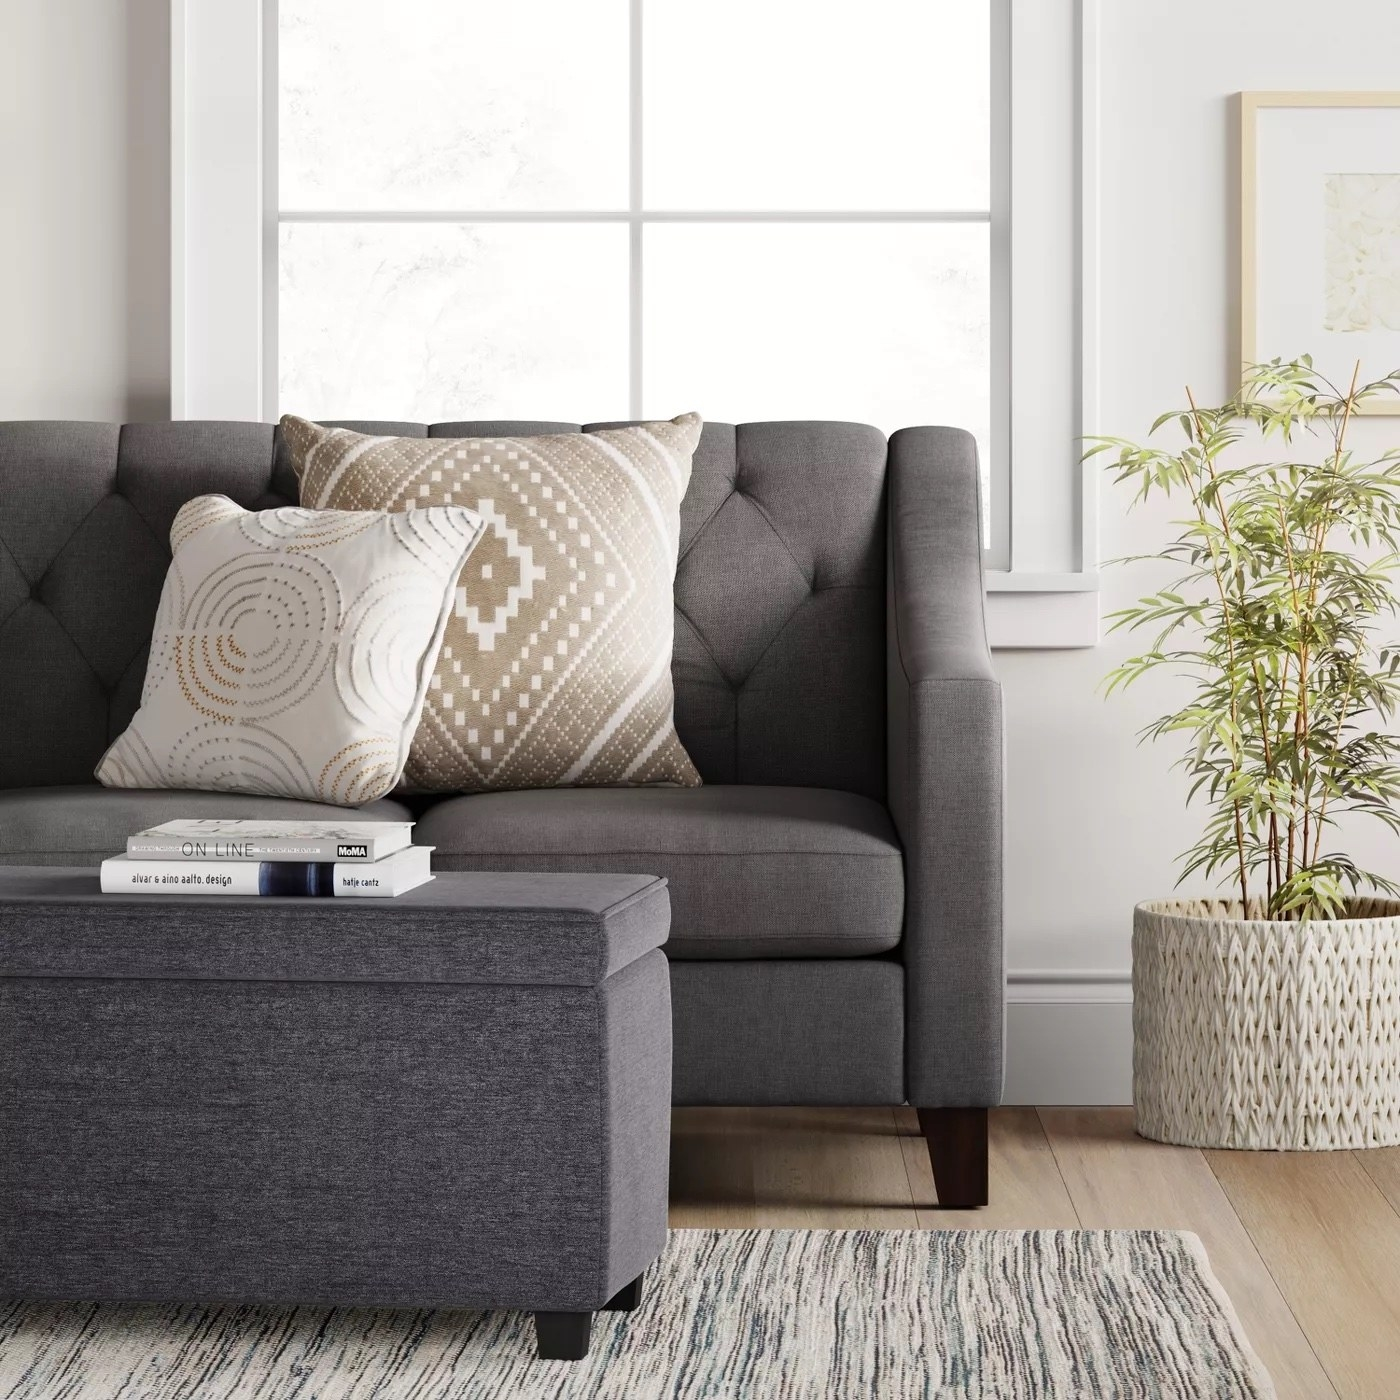 The storage ottoman in a living room